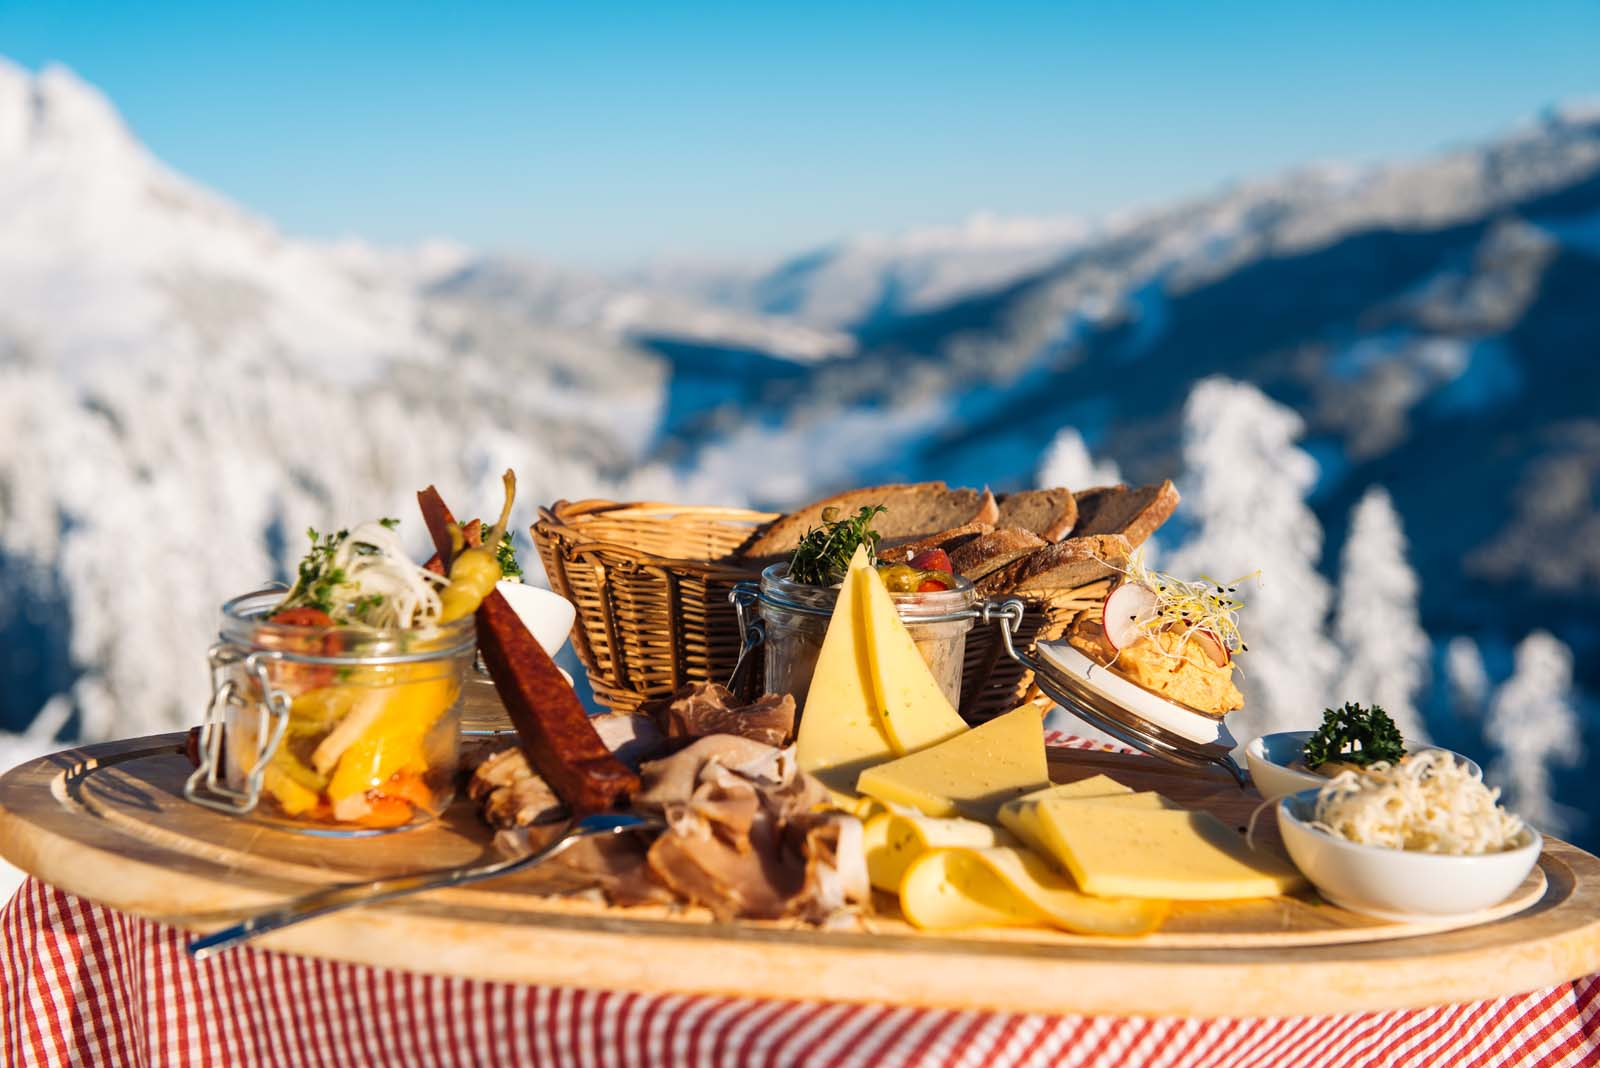 culinary at the mountains for everybody